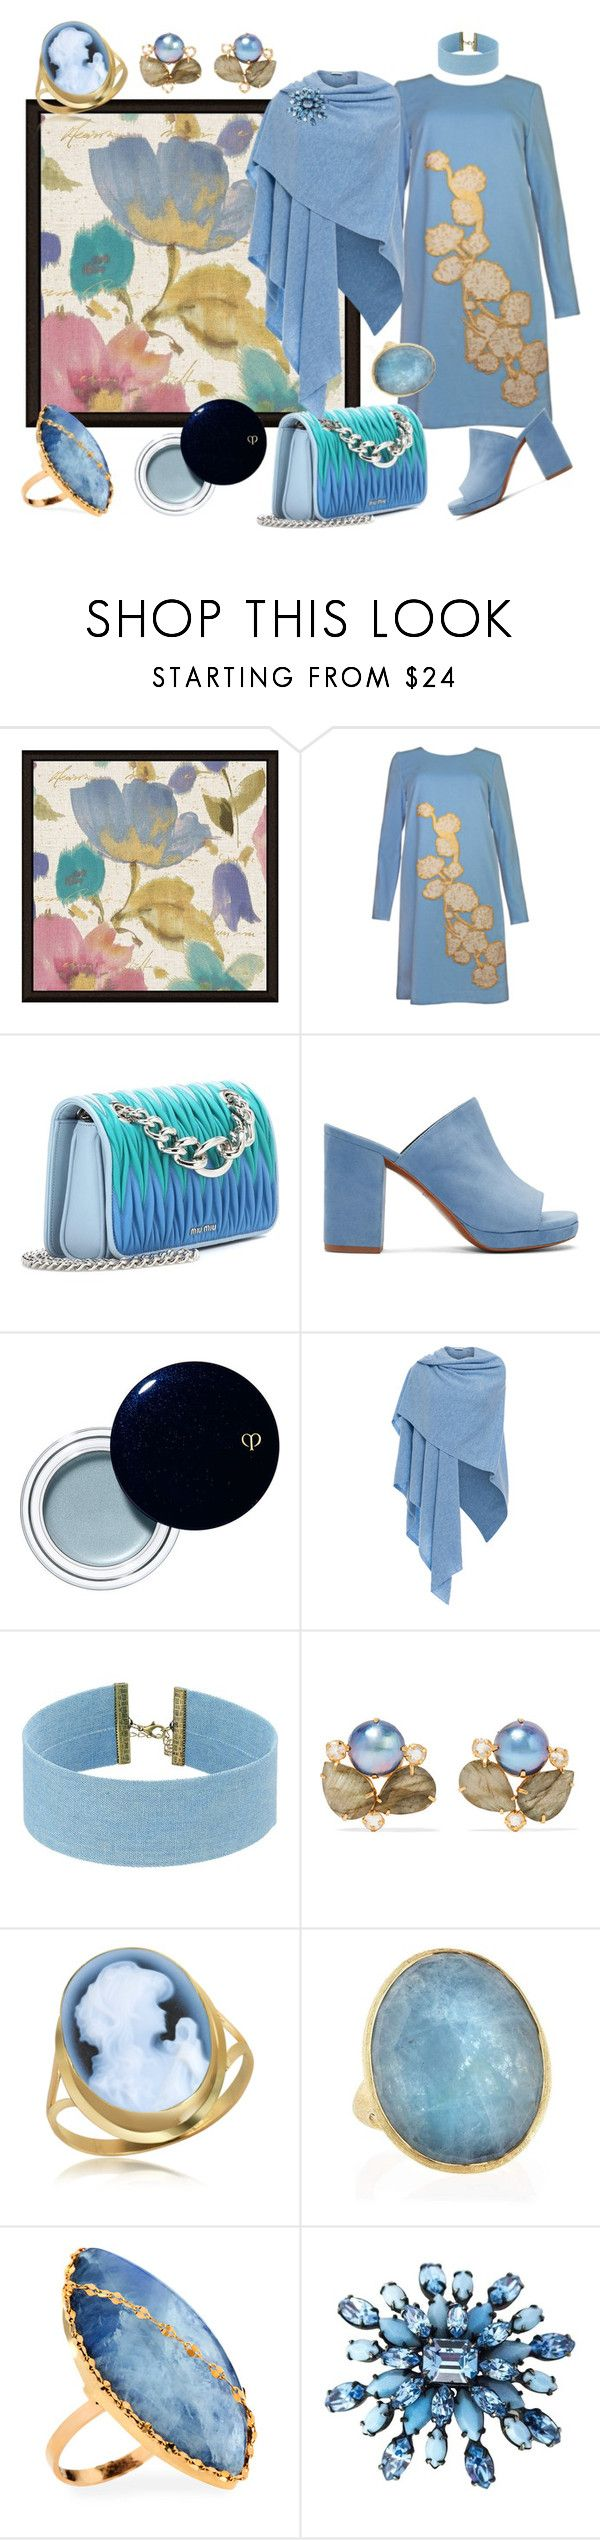 """""""Indigenous"""" by yournightnurse ❤ liked on Polyvore featuring Green Leaf Art, Plakinger, Miu Miu, Robert Clergerie, Clé de Peau Beauté, Kinross, Steve Madden, Bounkit, Del Gatto and Marco Bicego"""